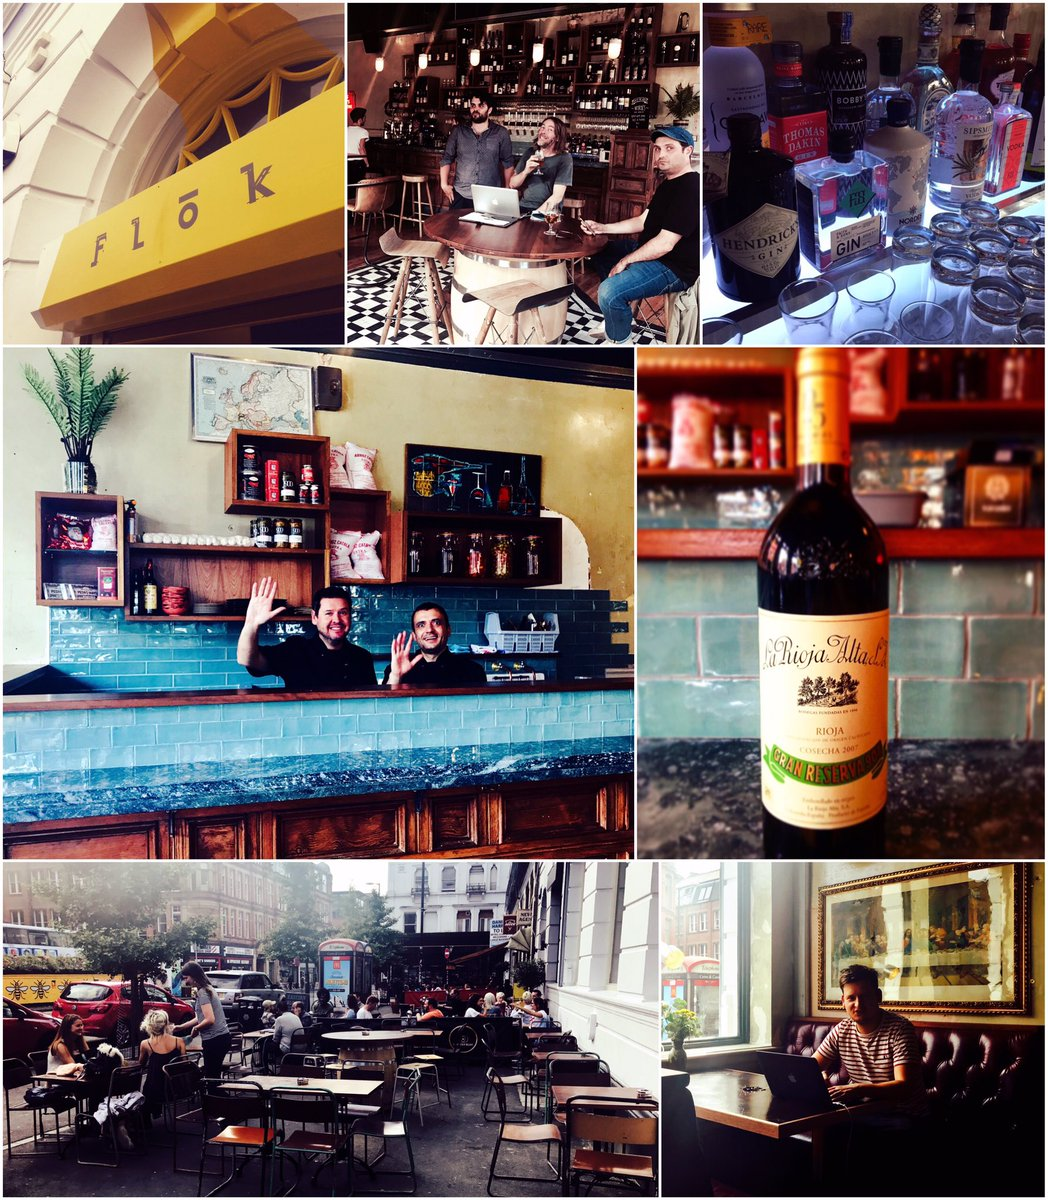 It&#39;s been a long time coming. But now WE&#39;RE HERE! Pop in and say HI! #northernquarter #sherry #ale #wine #manchester<br>http://pic.twitter.com/kwpt65Zonn